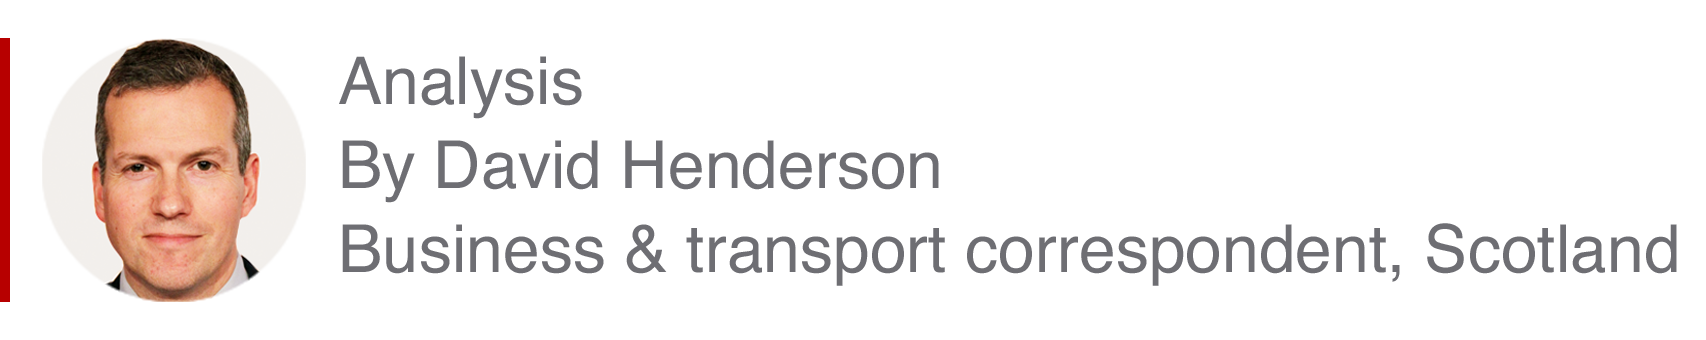 Analysis box by David Henderson, Business and transport correspondent, Scotland